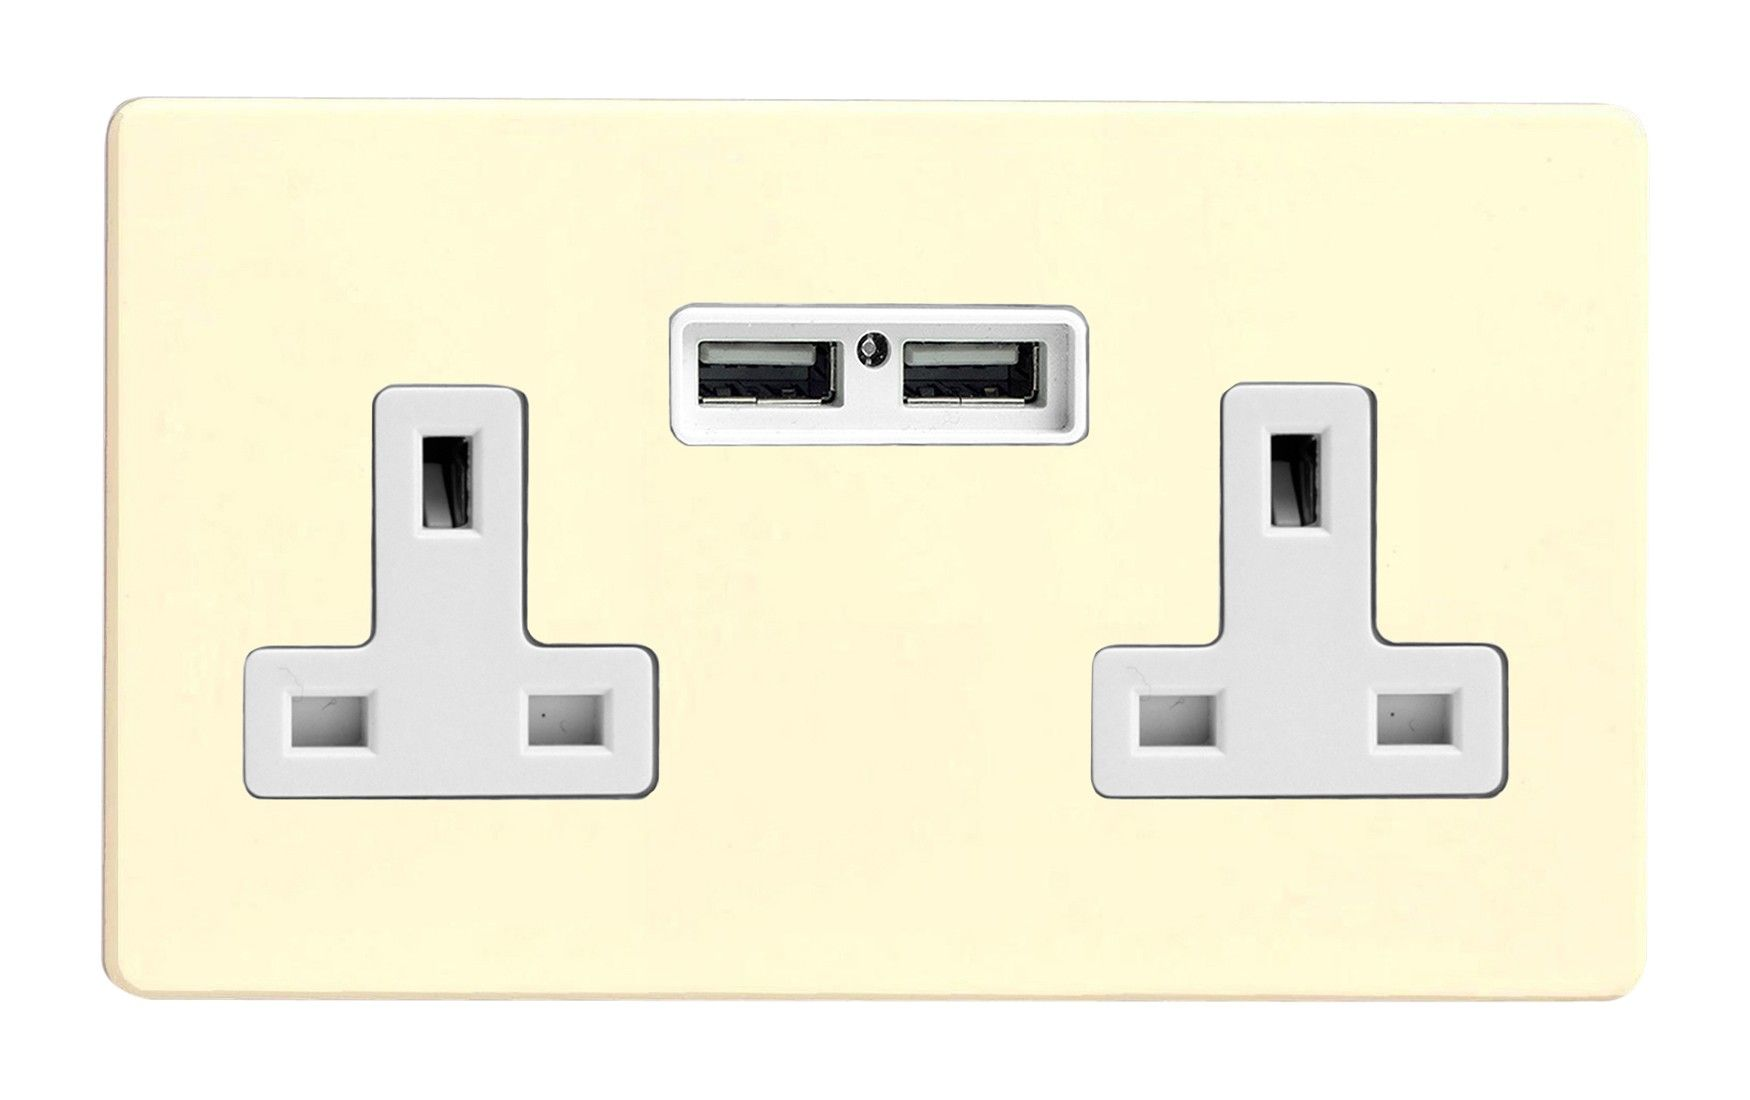 Plug the most common thing in every house and office: